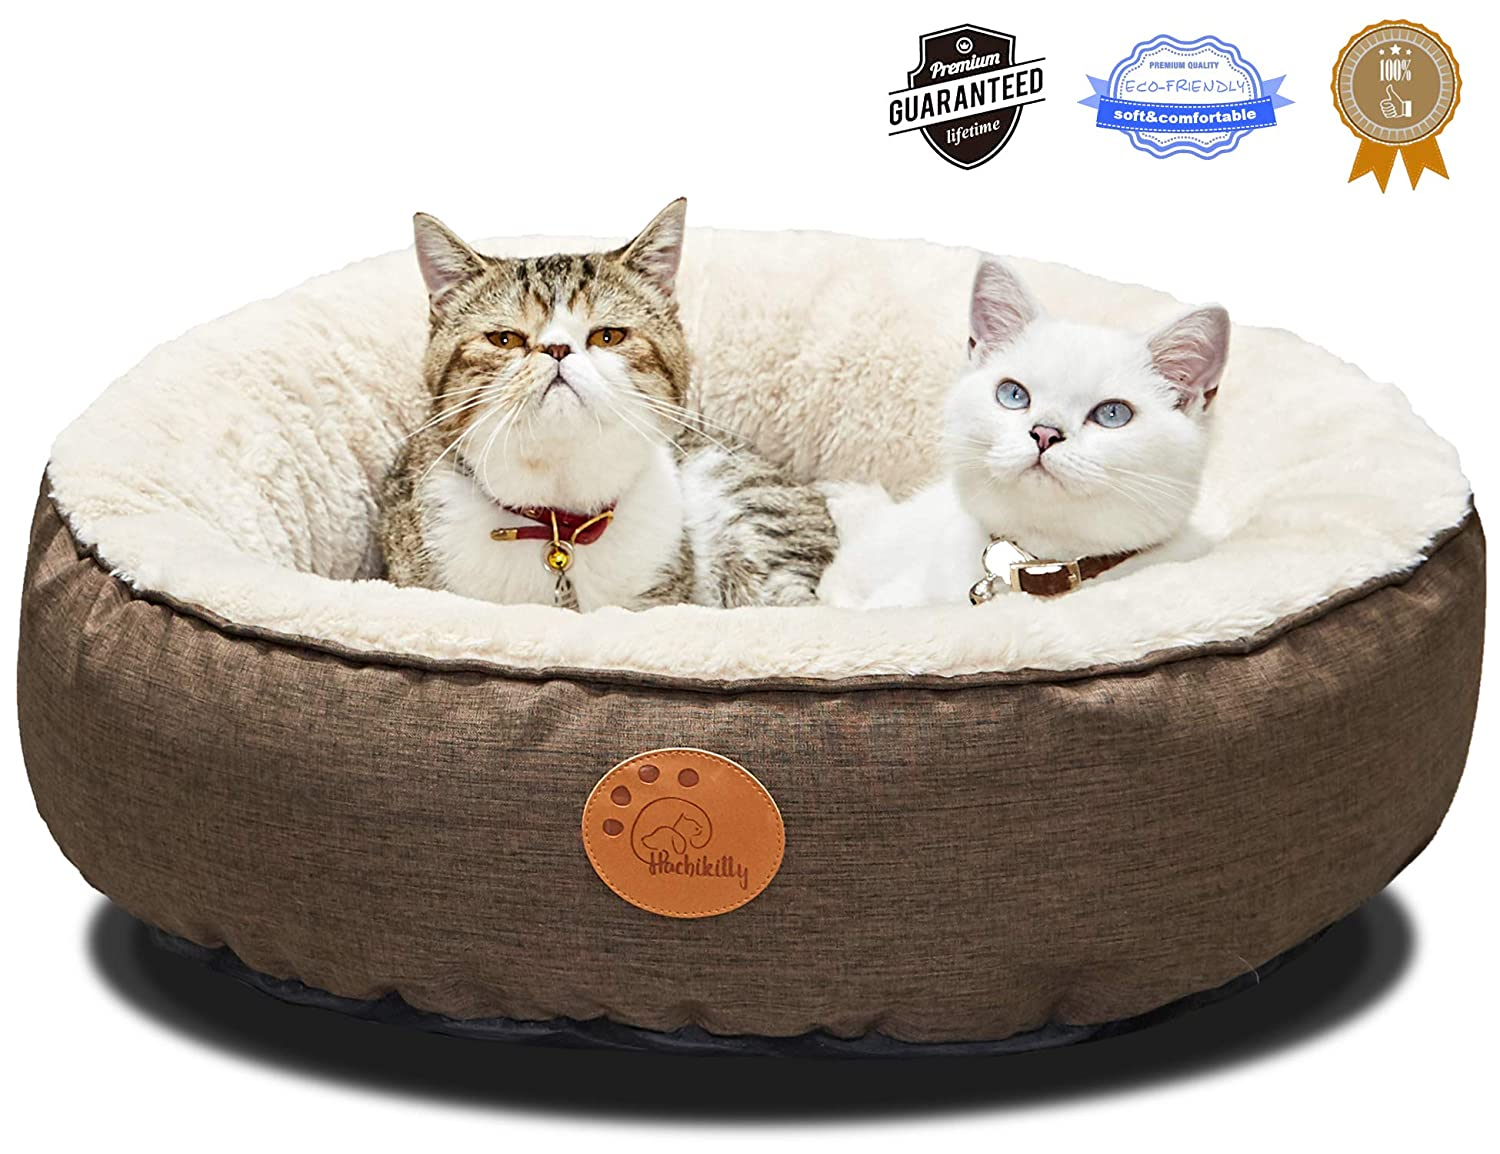 7860075bff5 Amazon.com : HACHIKITTY Washable Cat Bed Removable Cover, Fluffy Cat Bed  Medium Round Cat Bed Indoor Small Cat Bed Waterproof : Pet Supplies